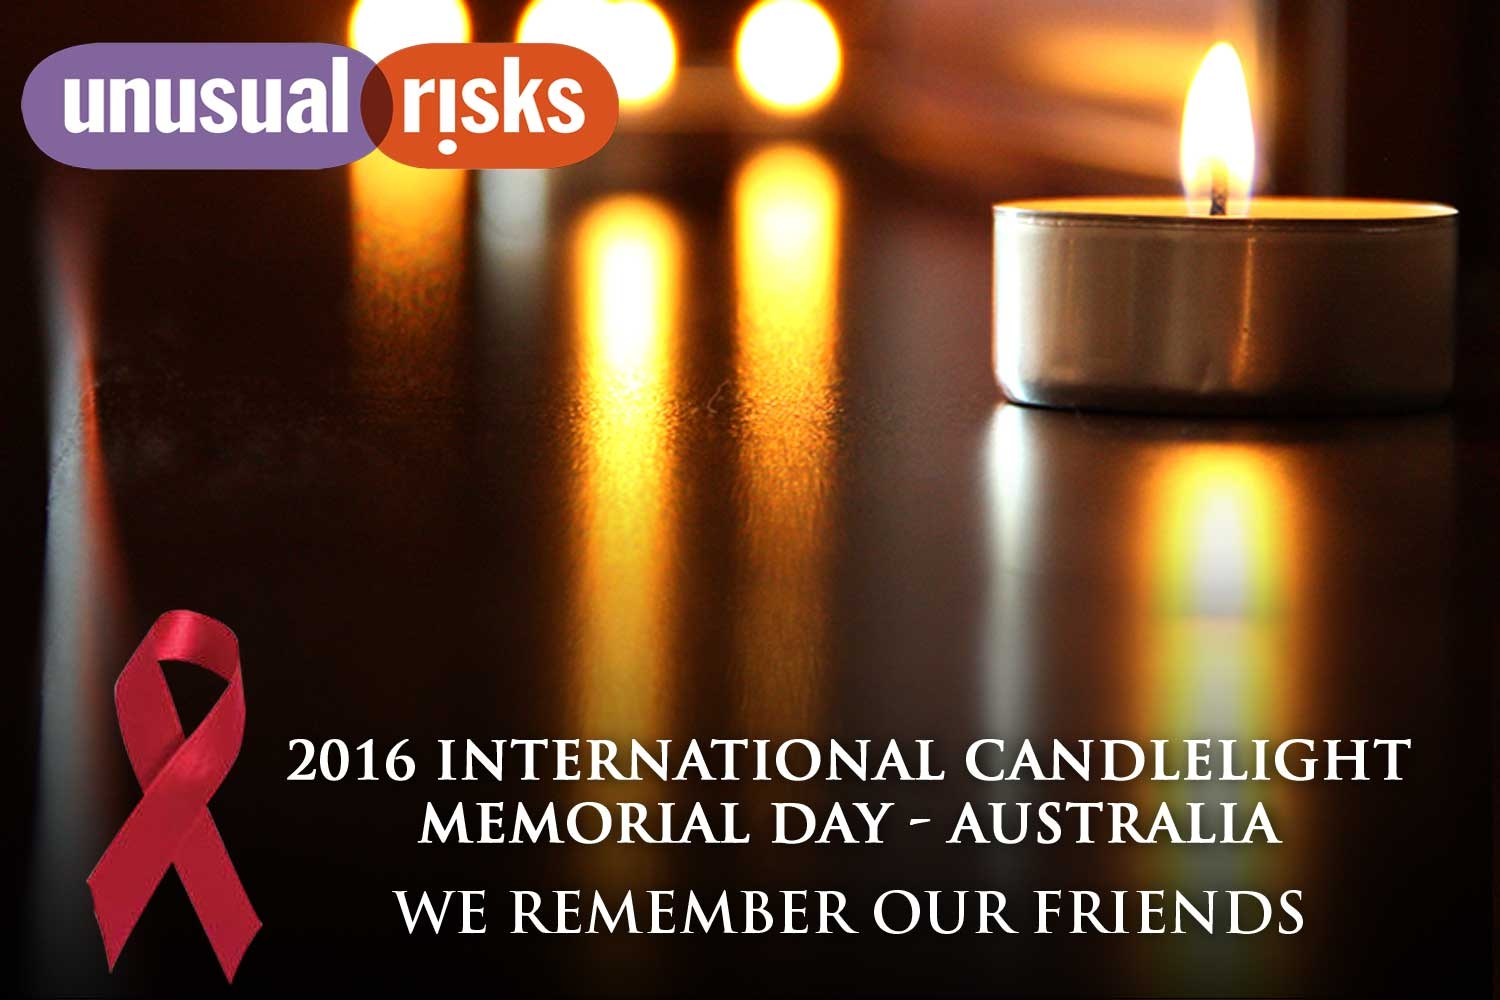 2016 International Candlelight Memorial Day - Unusual ...